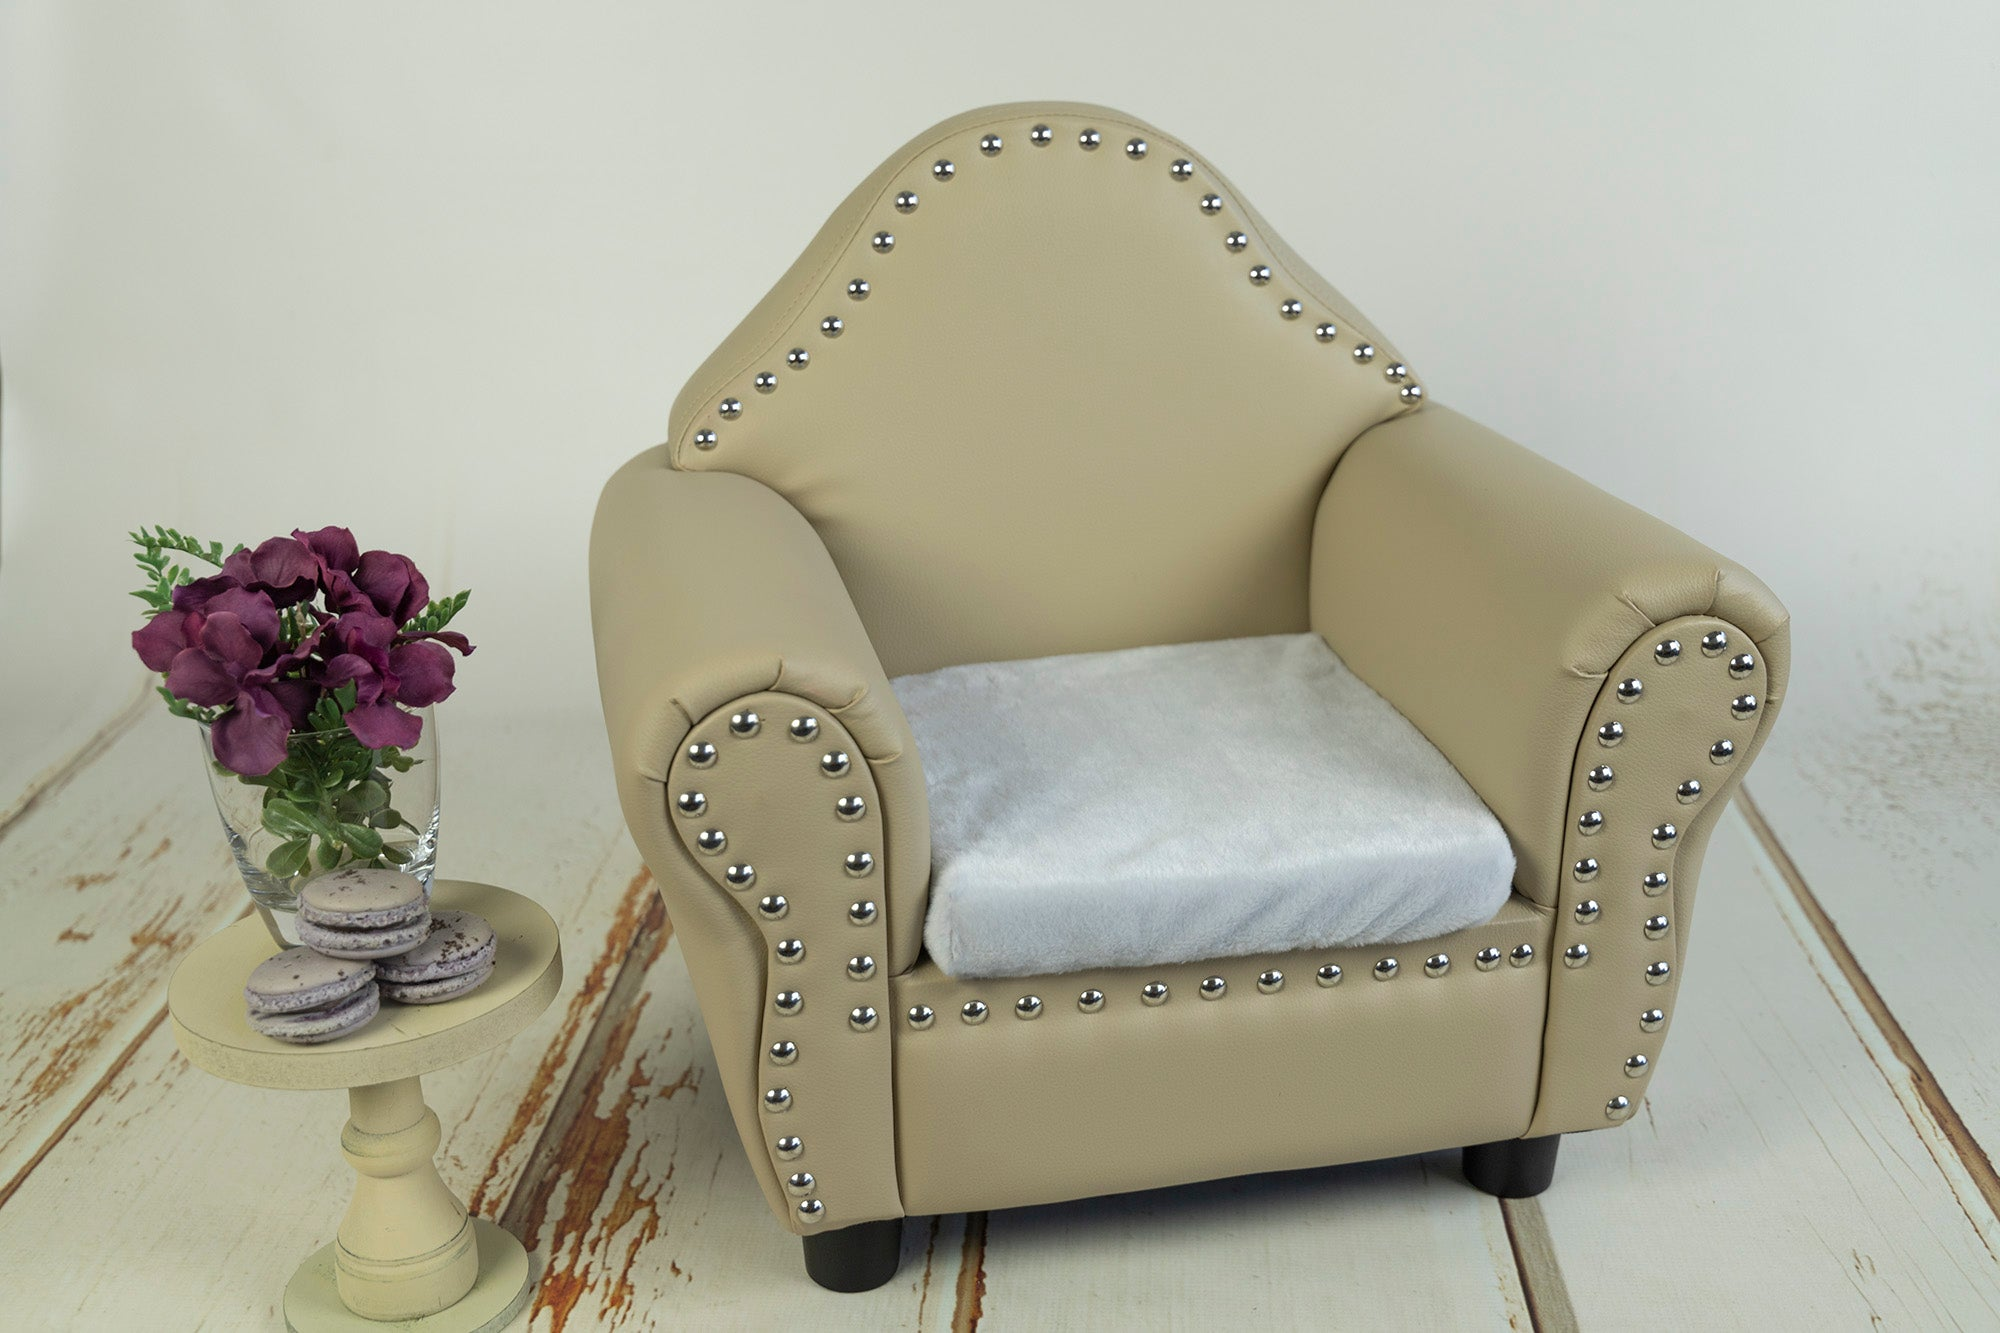 Mini Sofa - Model 12 - Beige